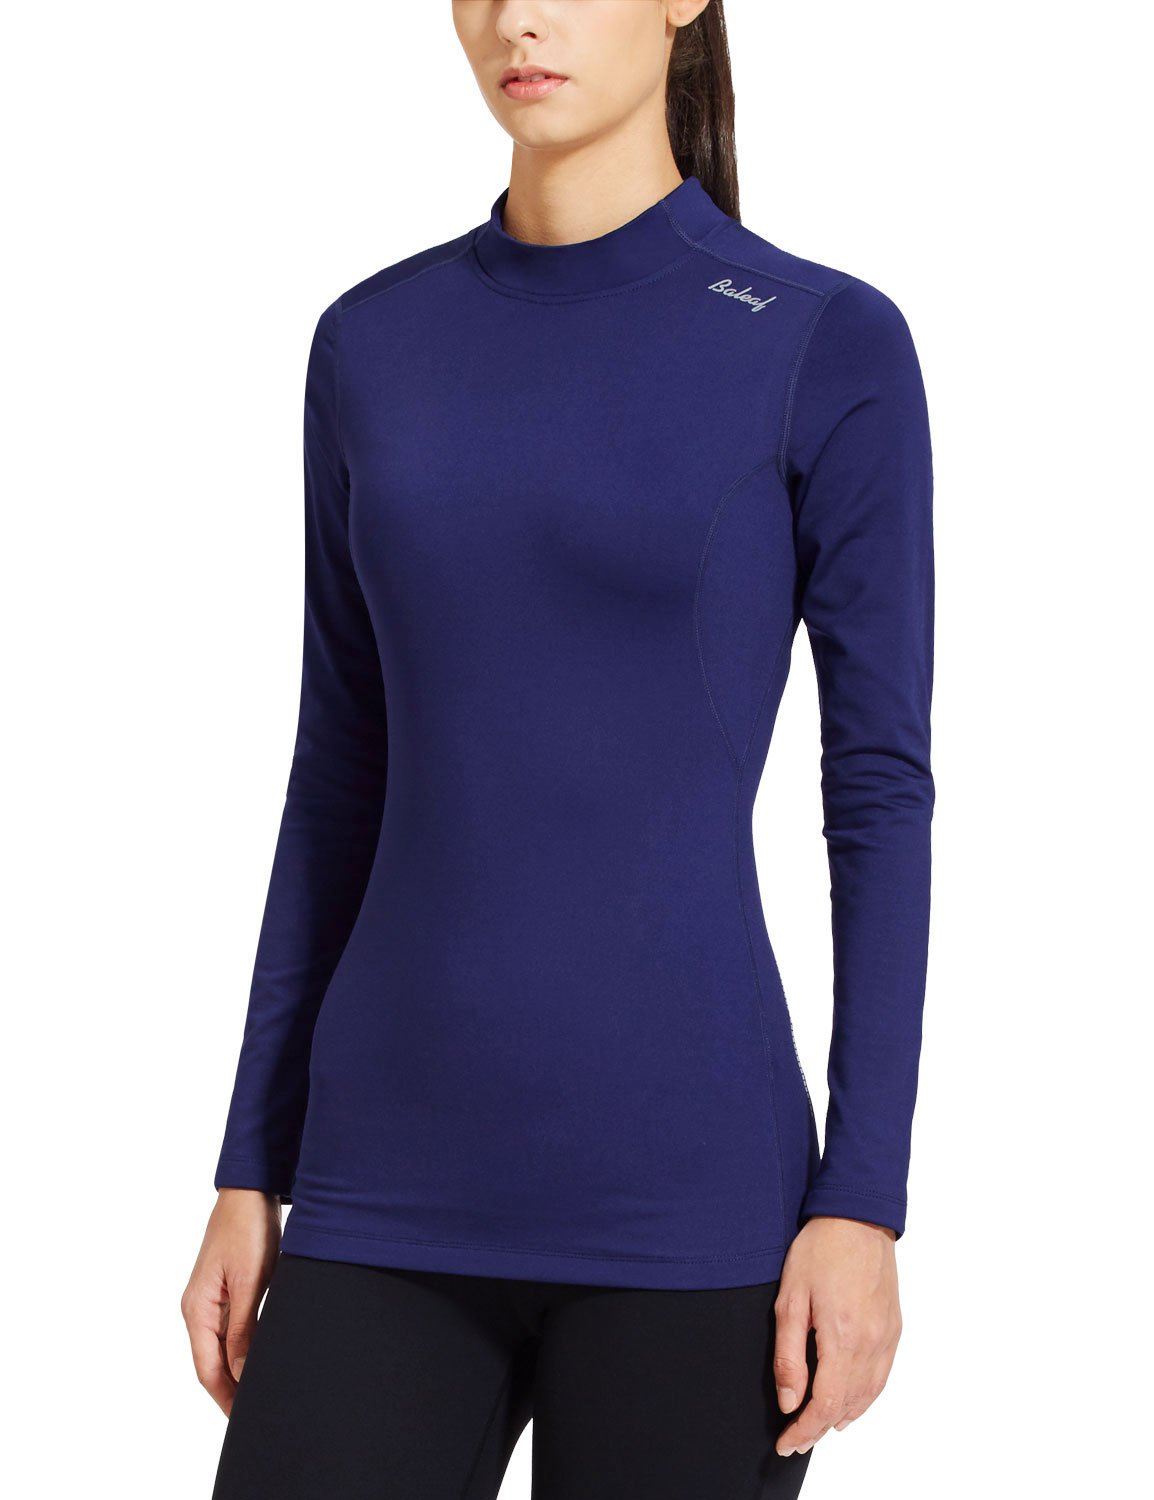 Baleaf Women's Fleece Thermal Active Running Shirt